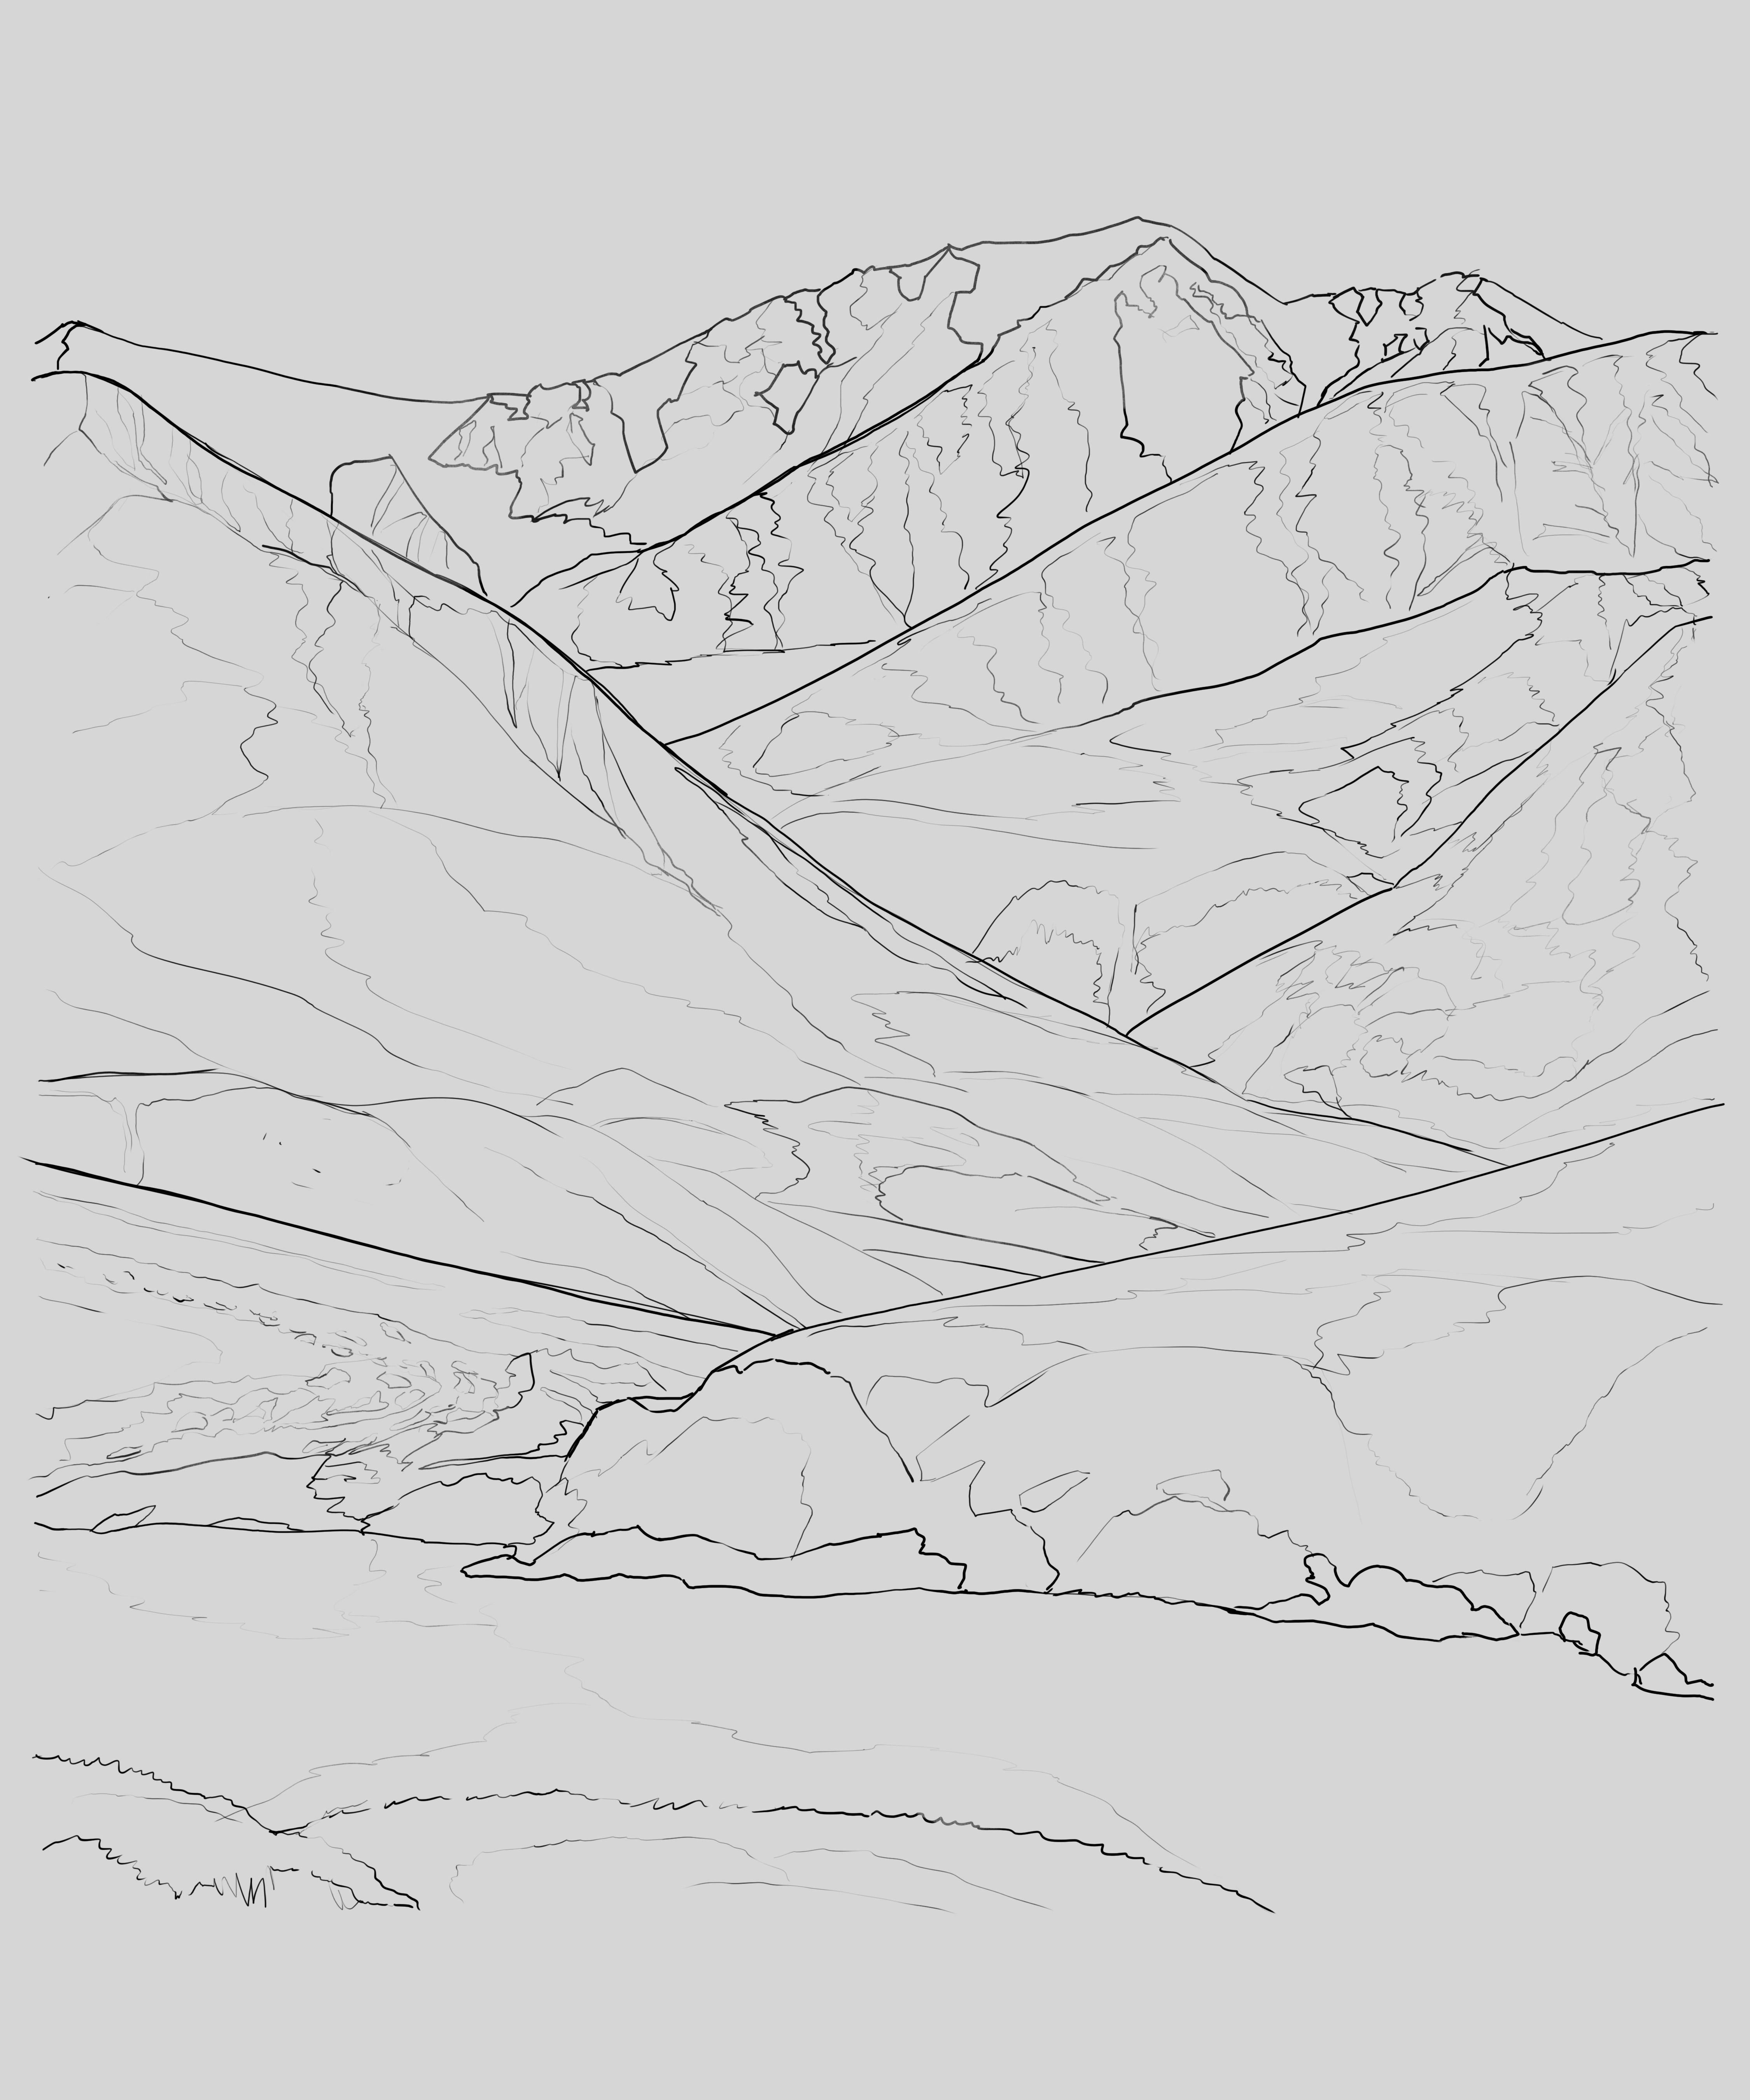 Mountain Valley Hopefully The Shapes Are Easy To Read Drawings